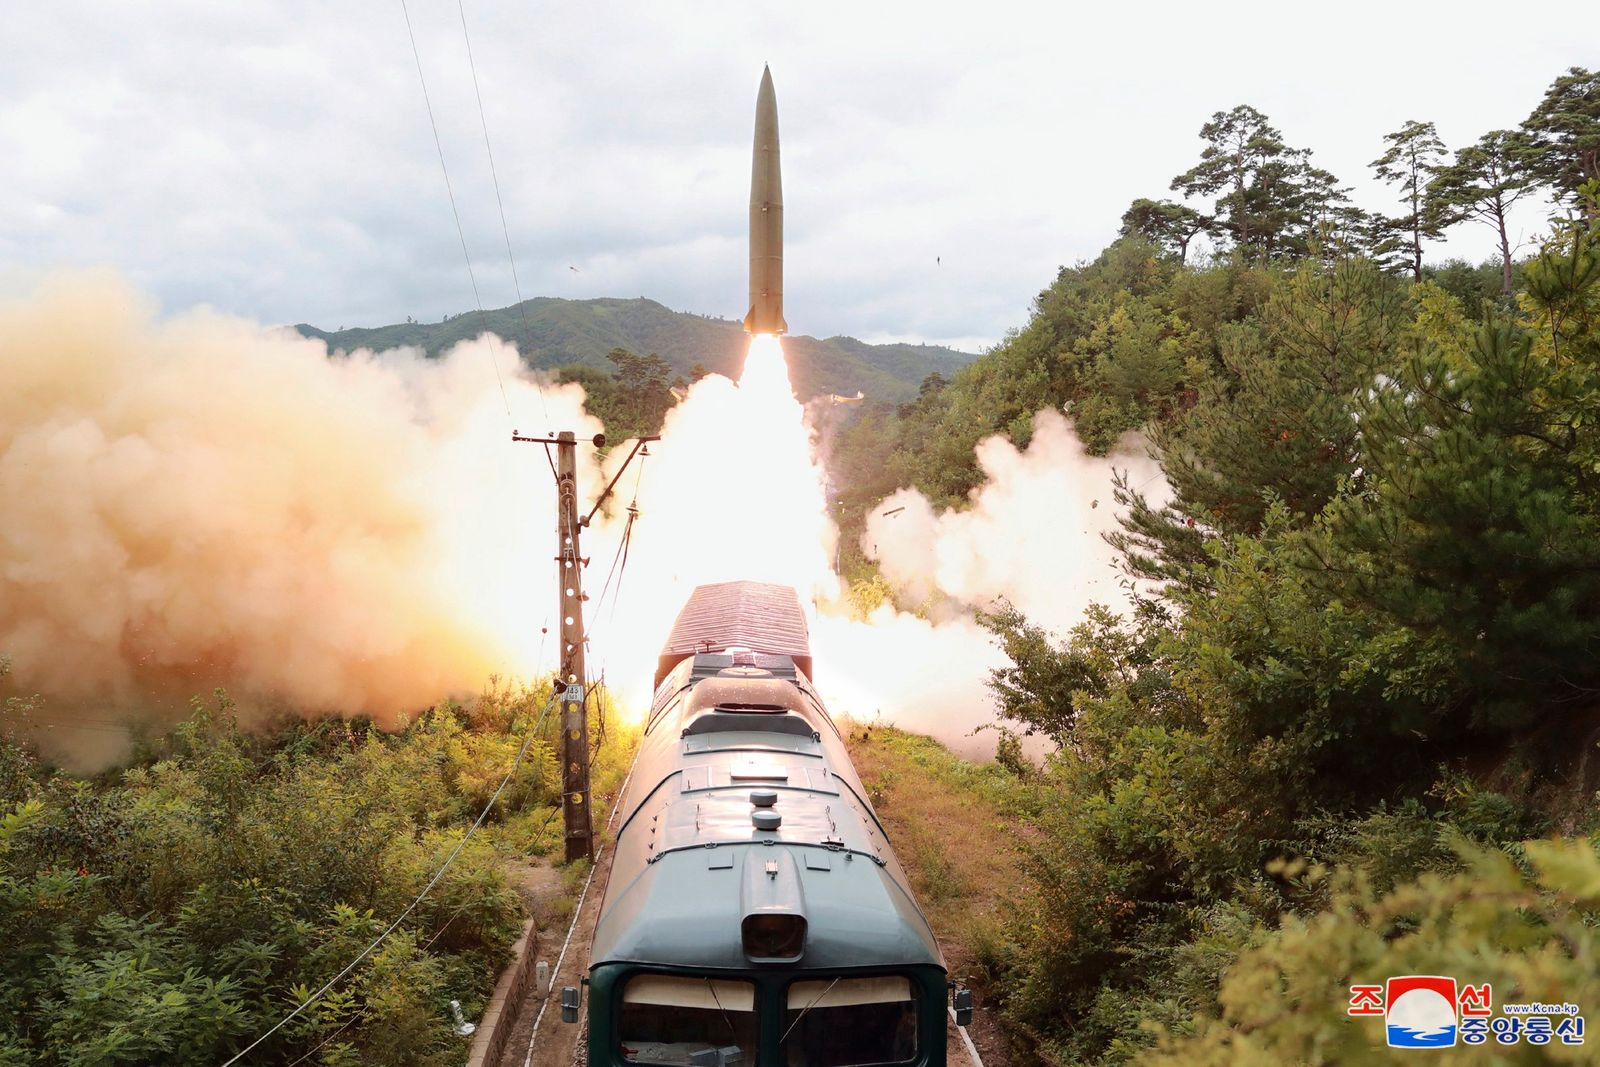 North Korea conducts test firing drill of railway-borne missile system